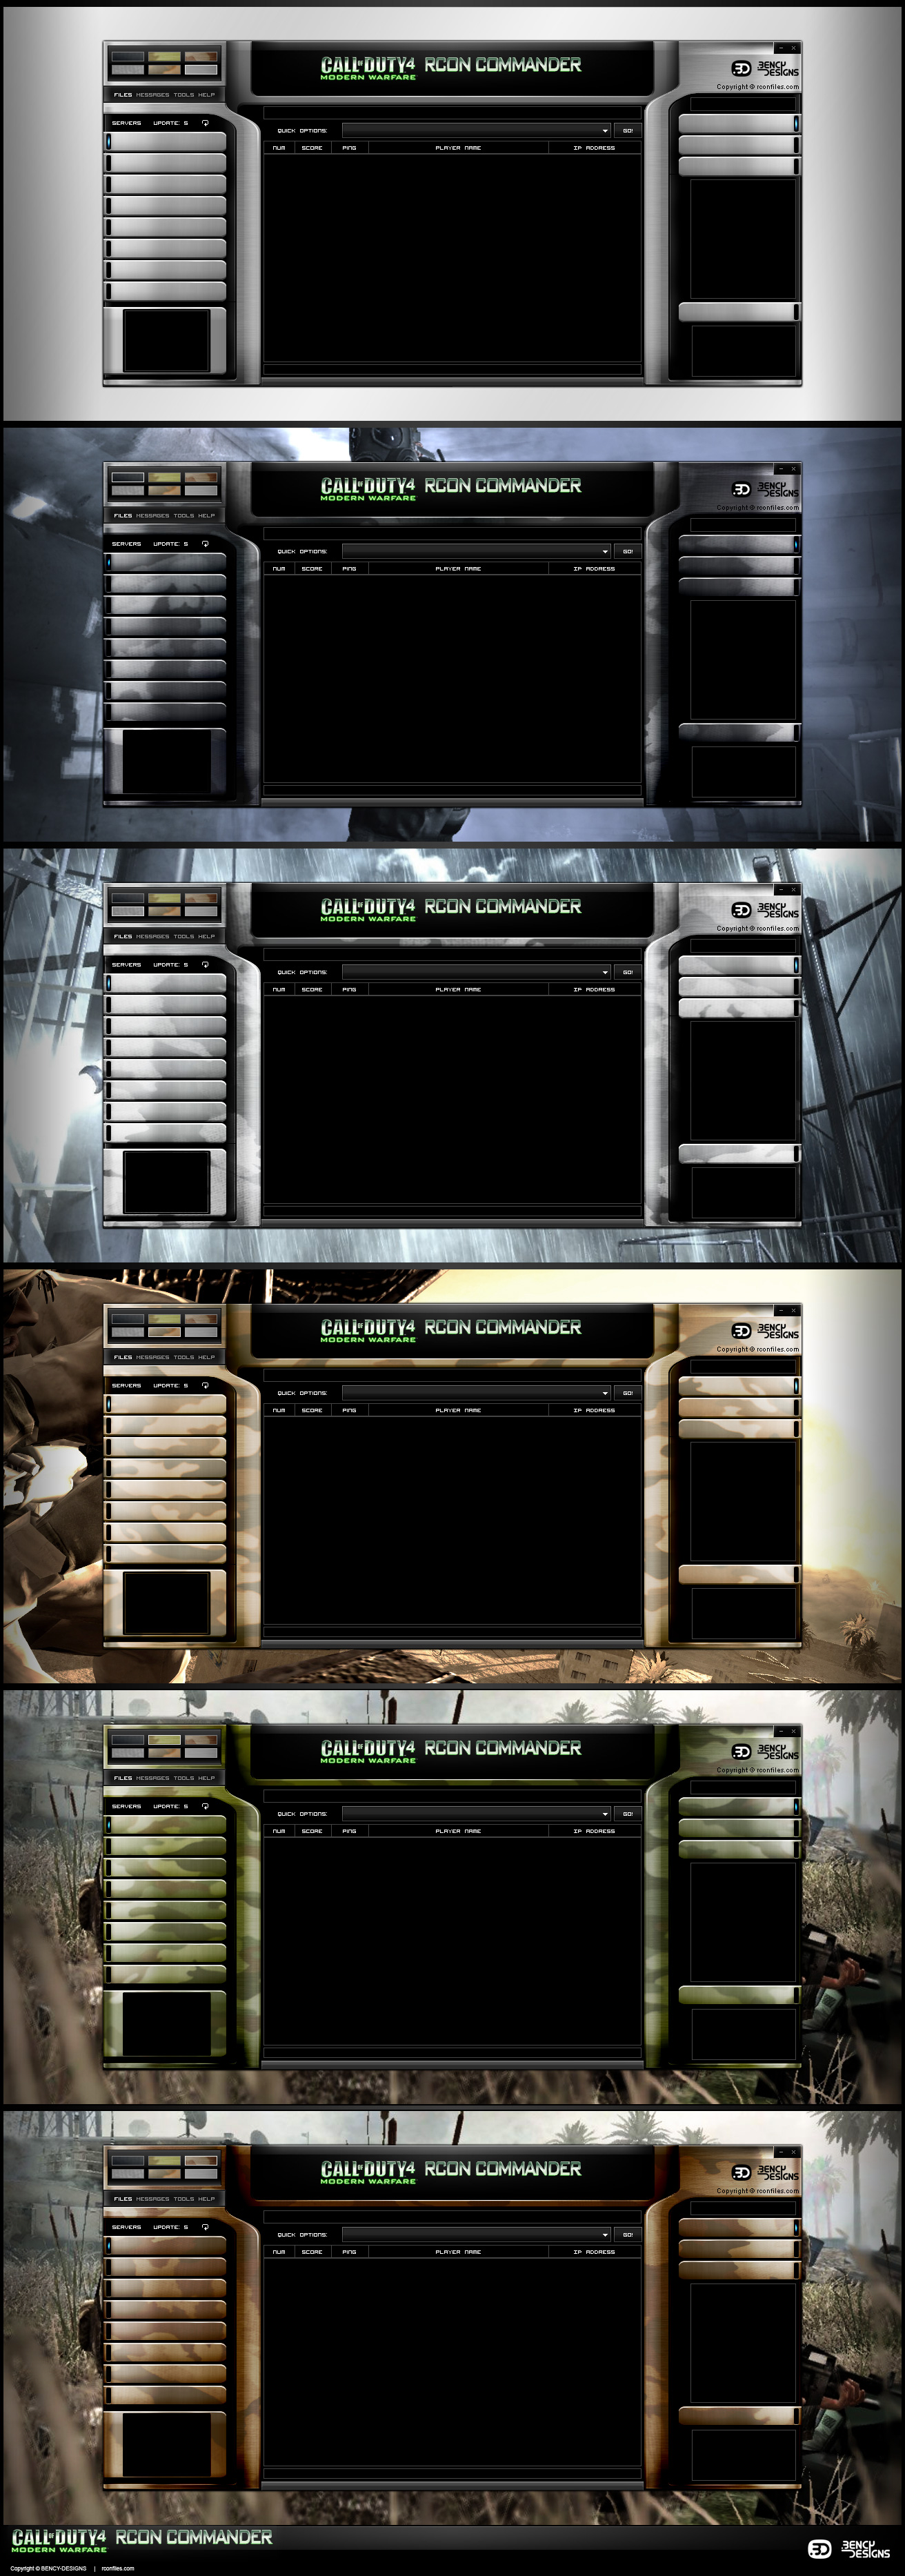 How to add skins to cod4